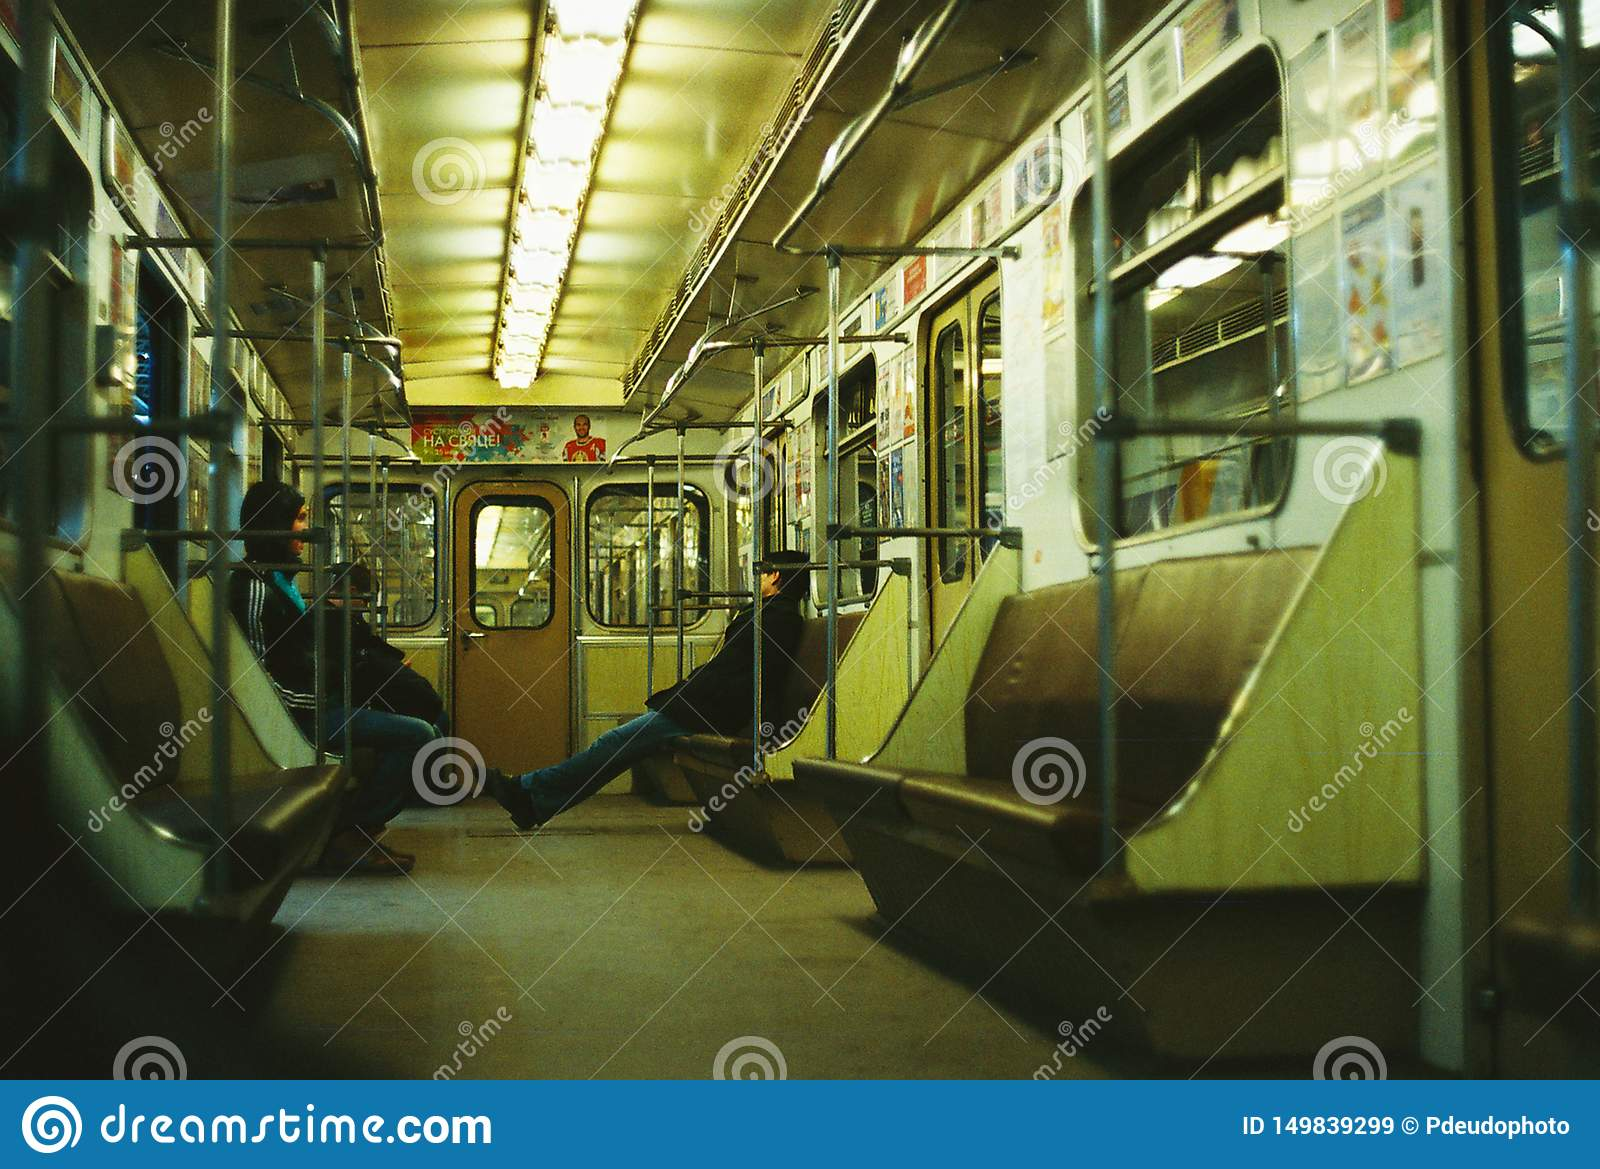 People ride the subway car